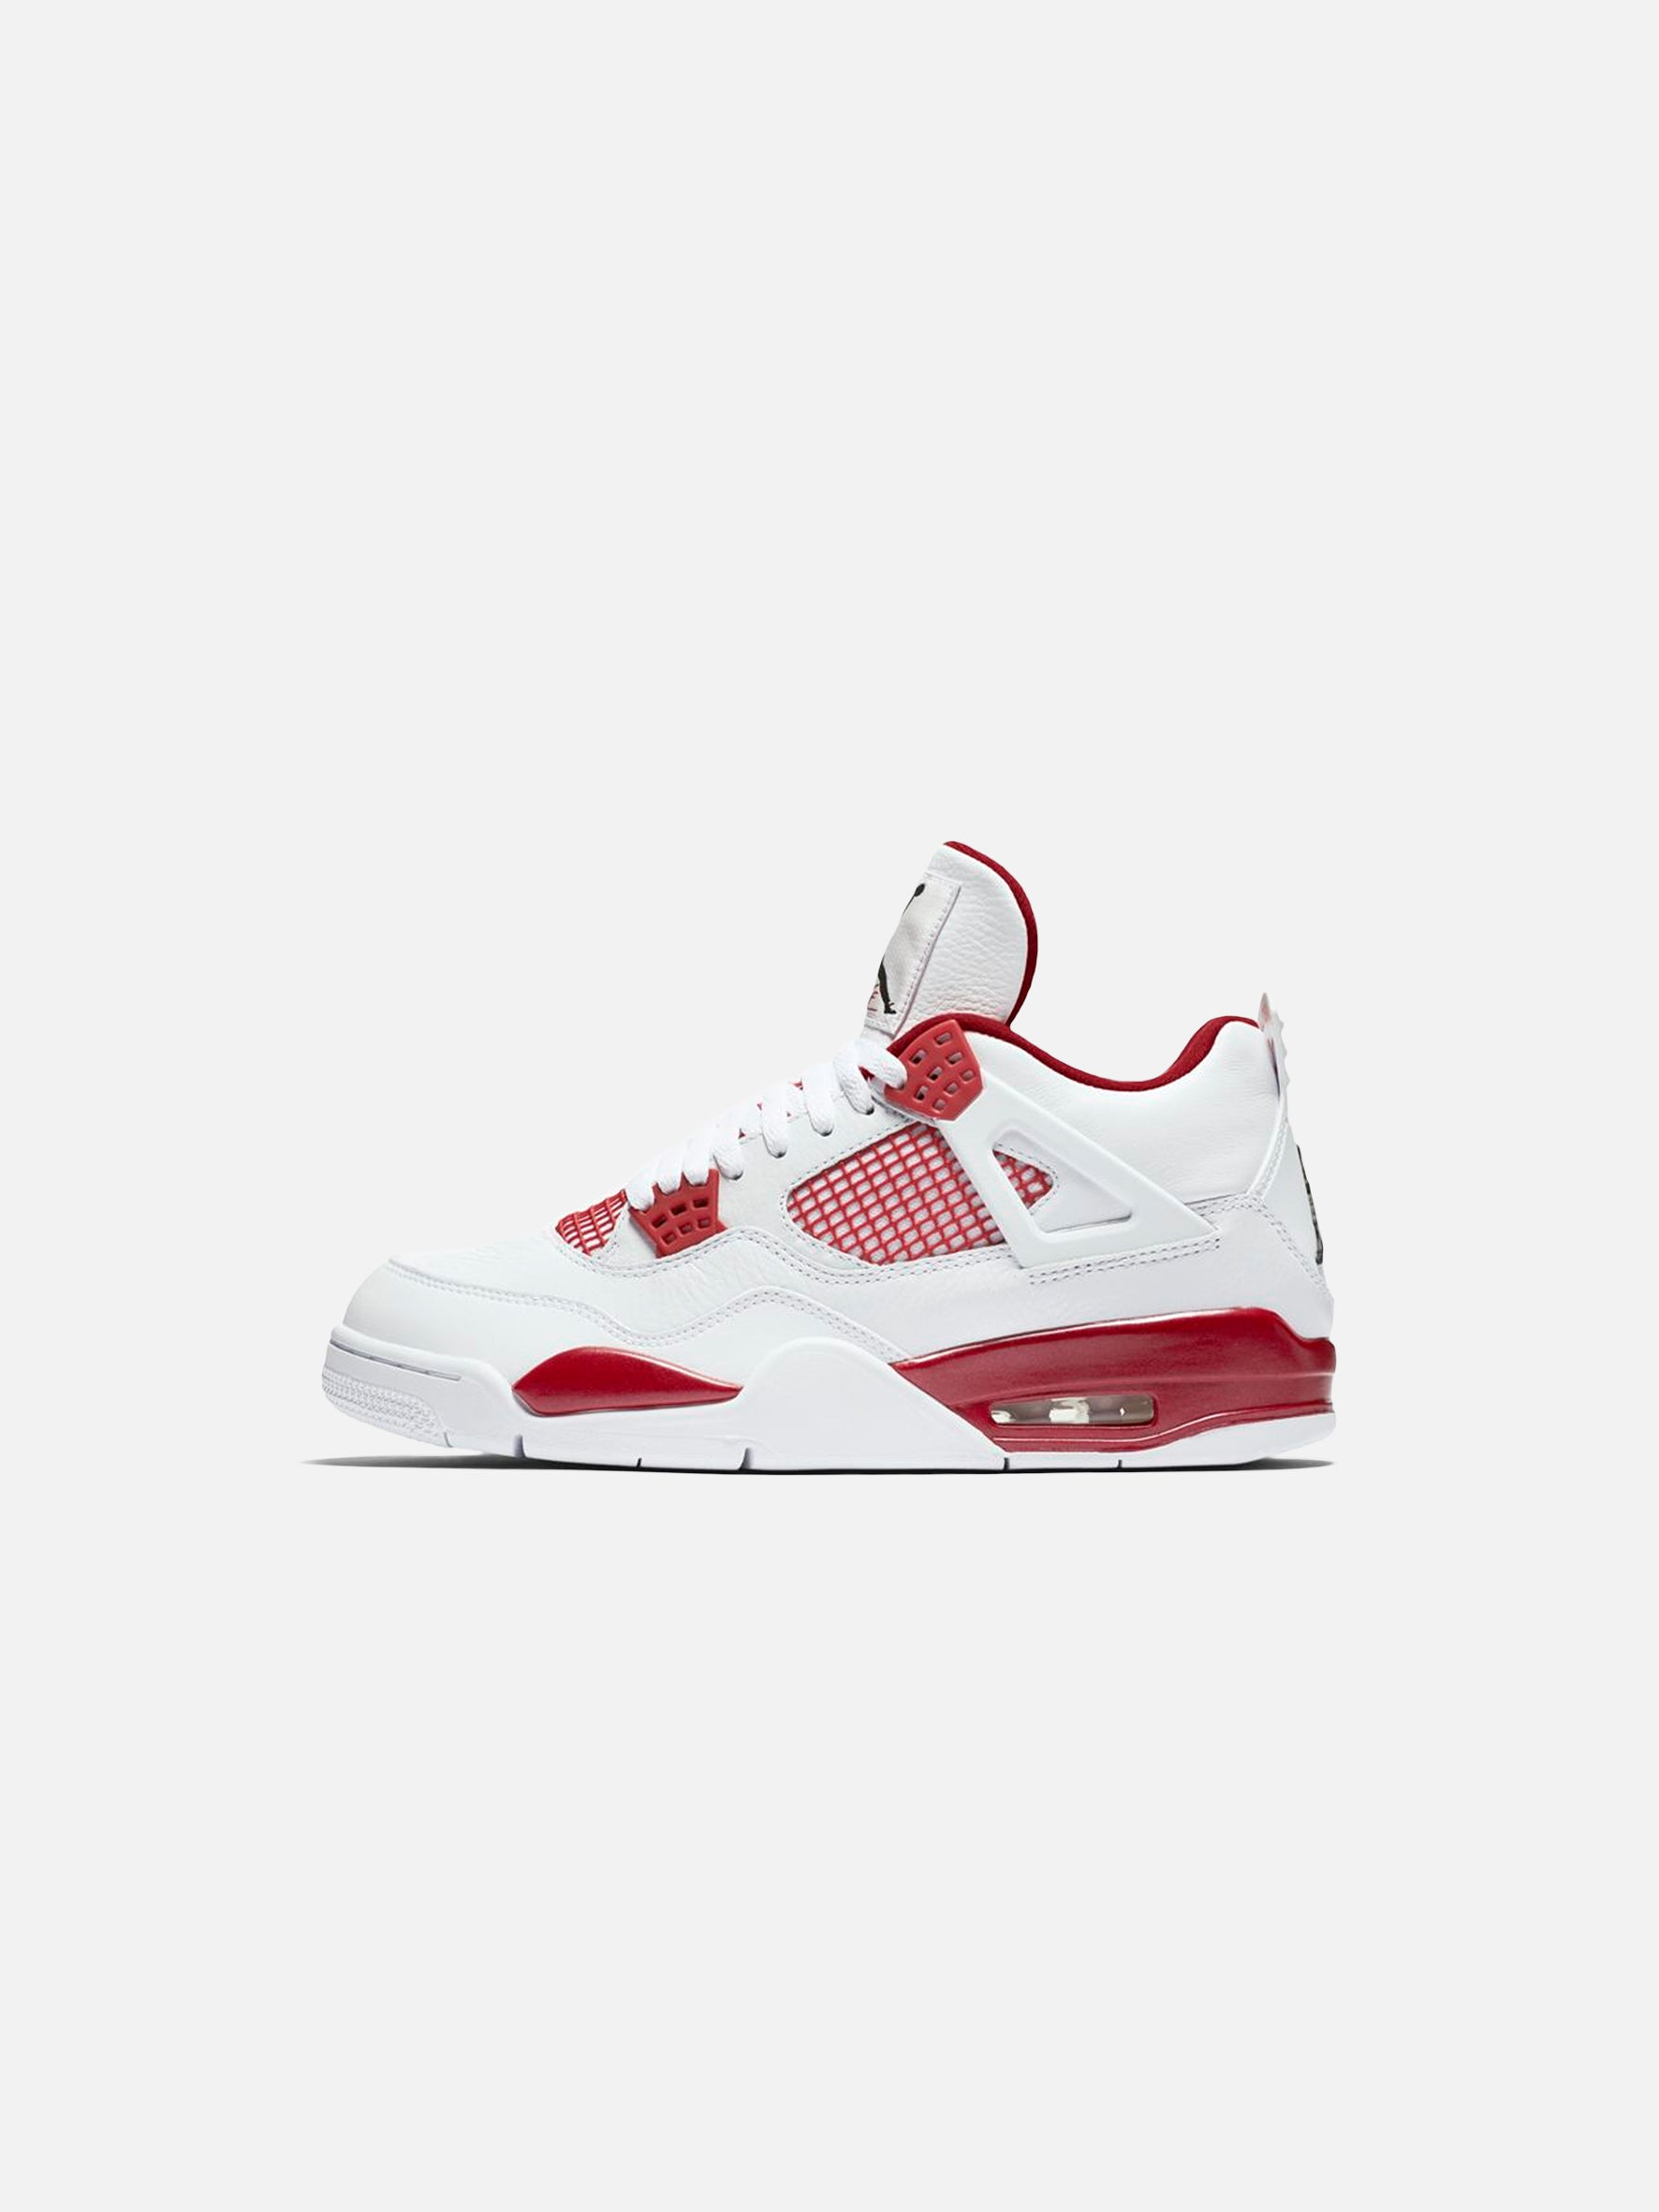 Nike Air Jordan IV Alternate 89